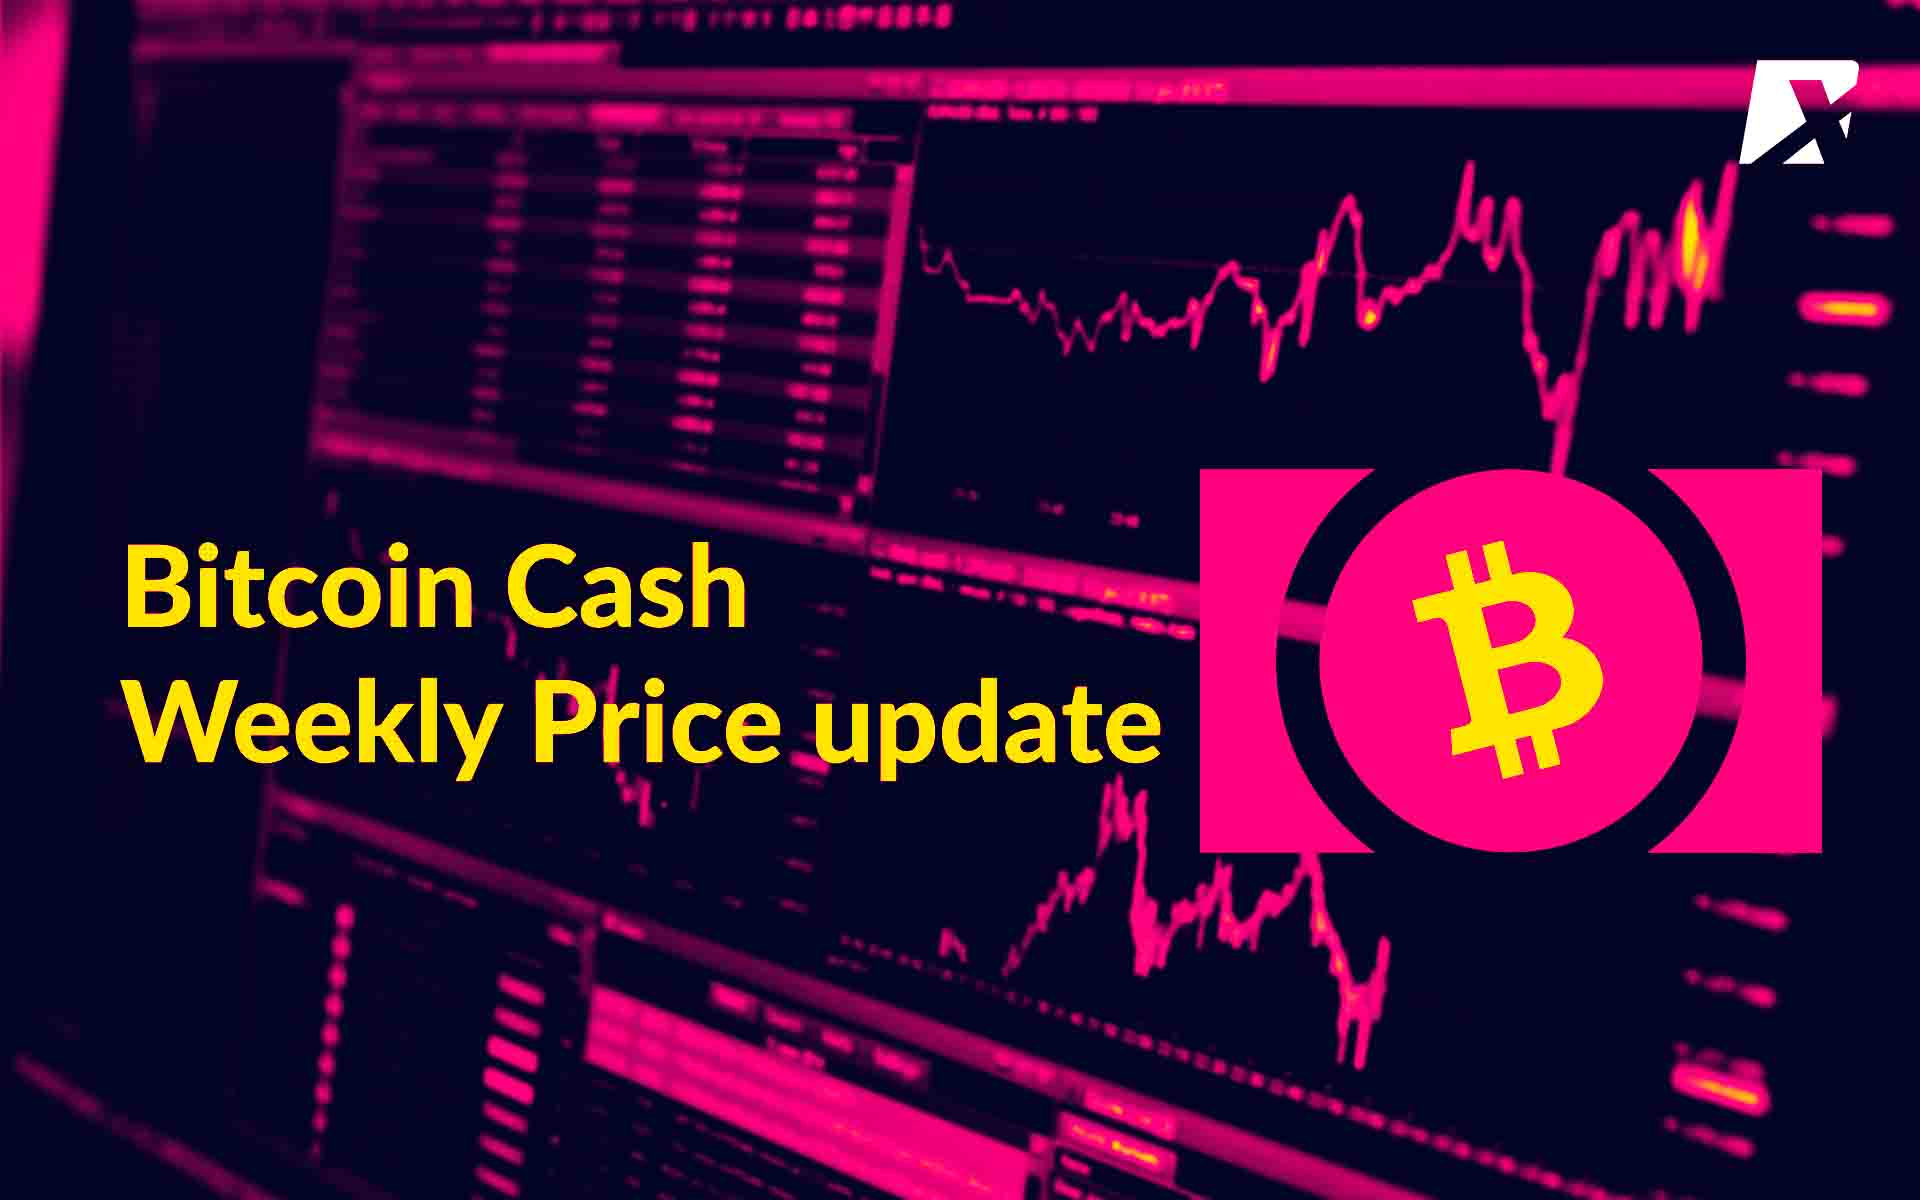 Cryptocurrency Price Analysis: Bitcoin Cash (BCH)